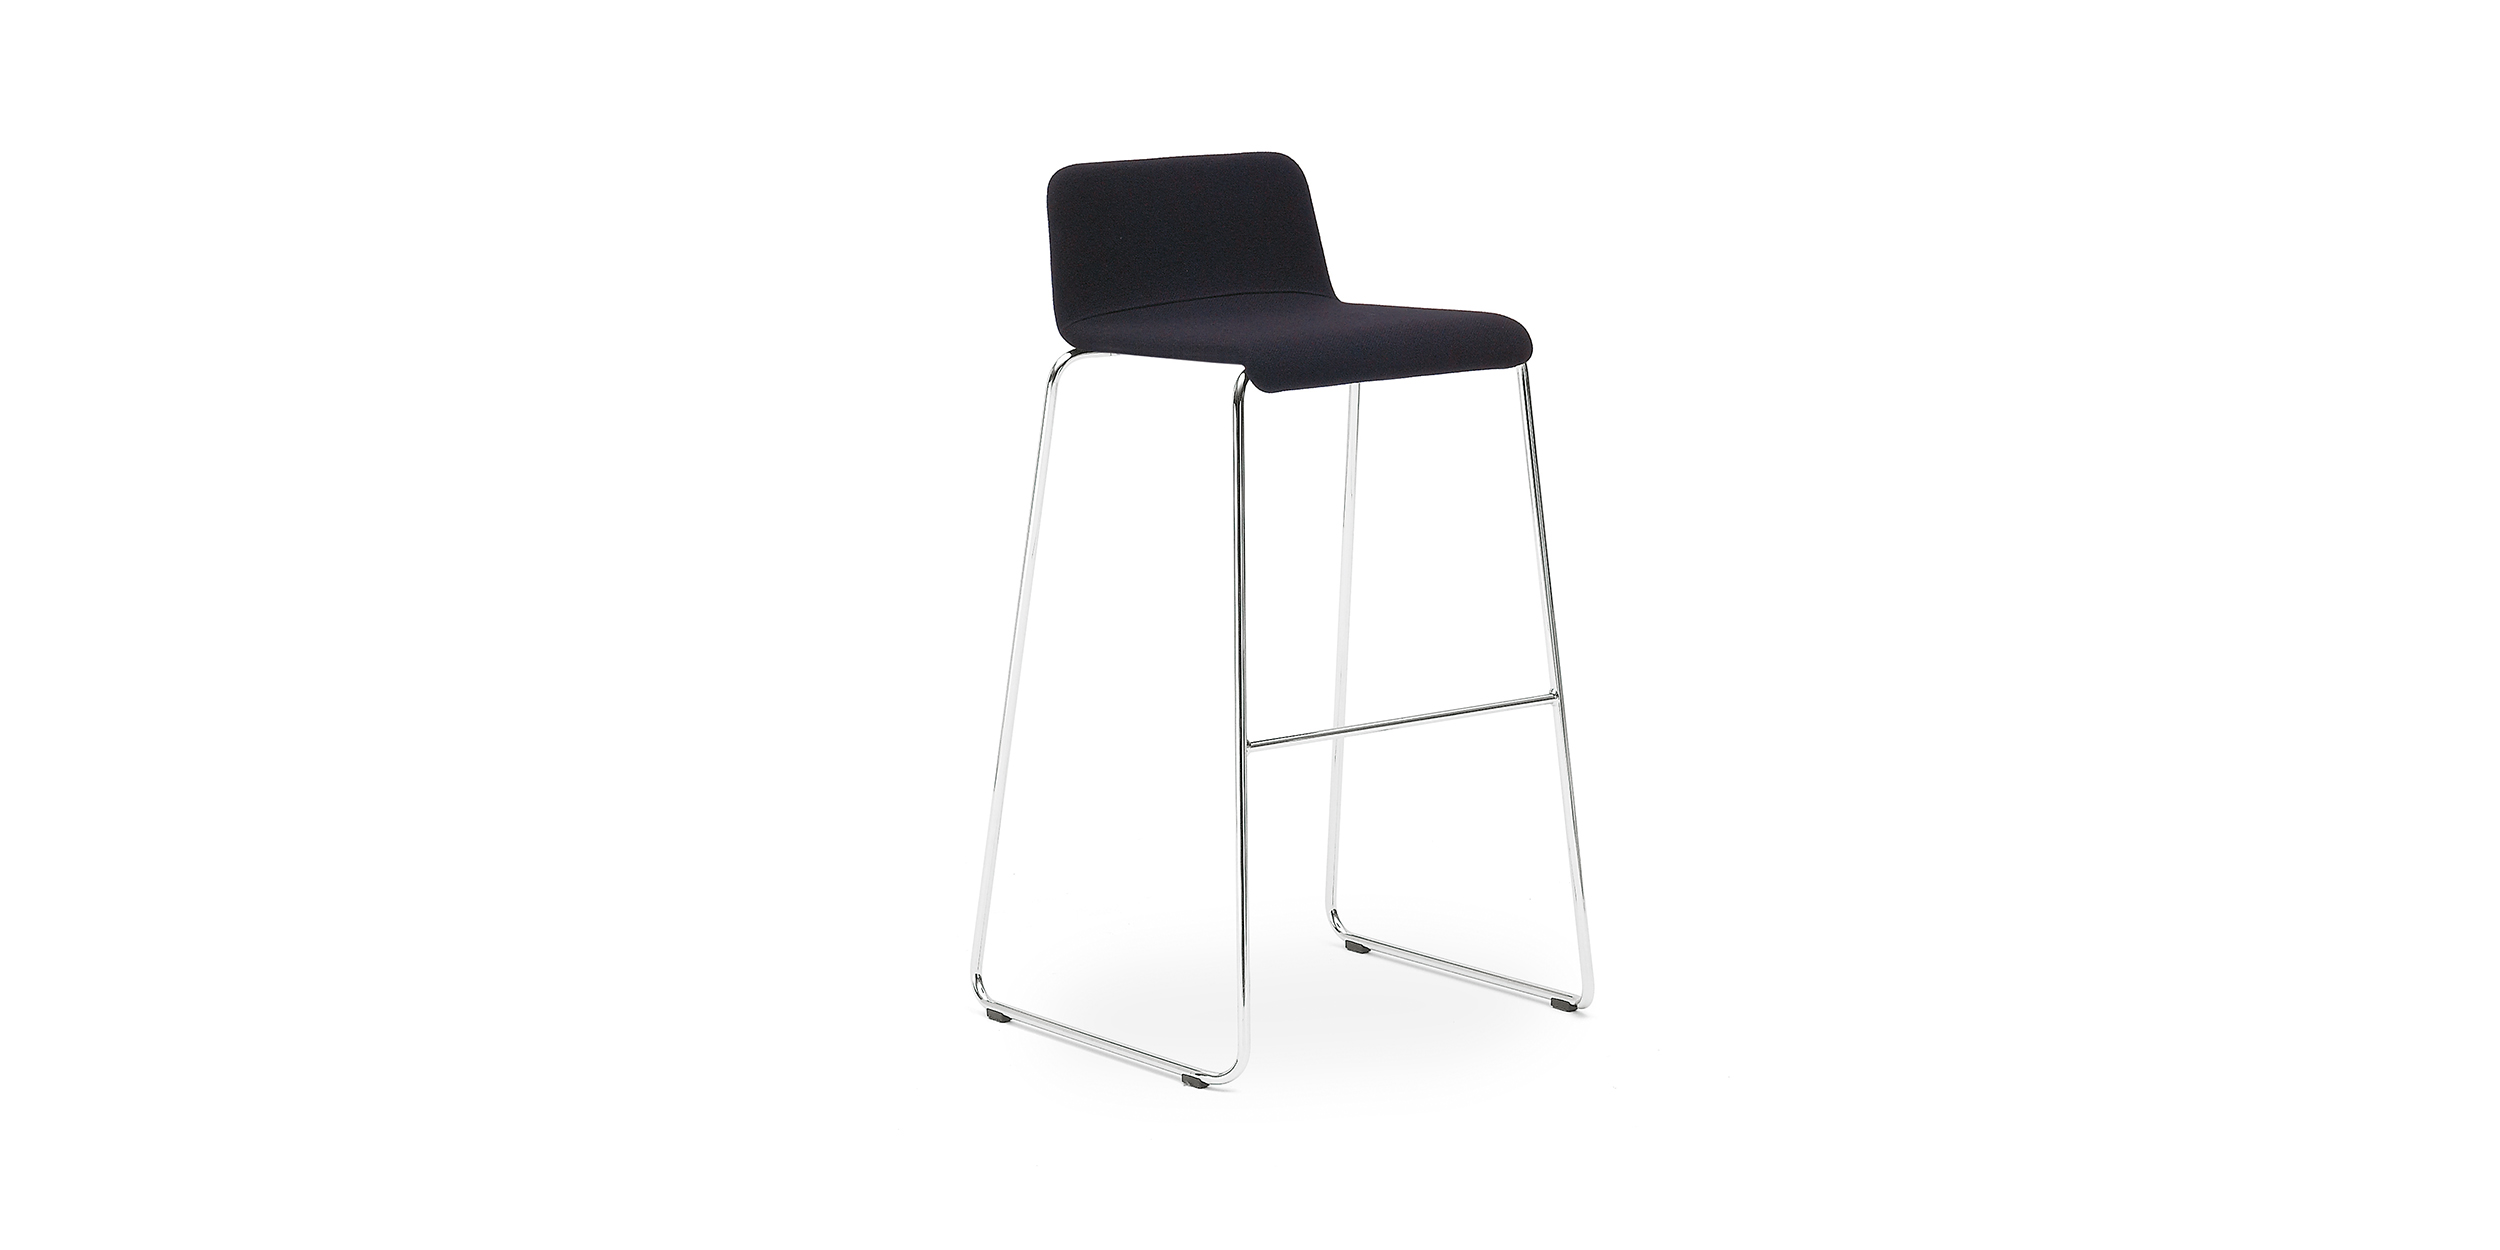 b rge birch product stools stool steel station stackable contemporary lindau prod by bla